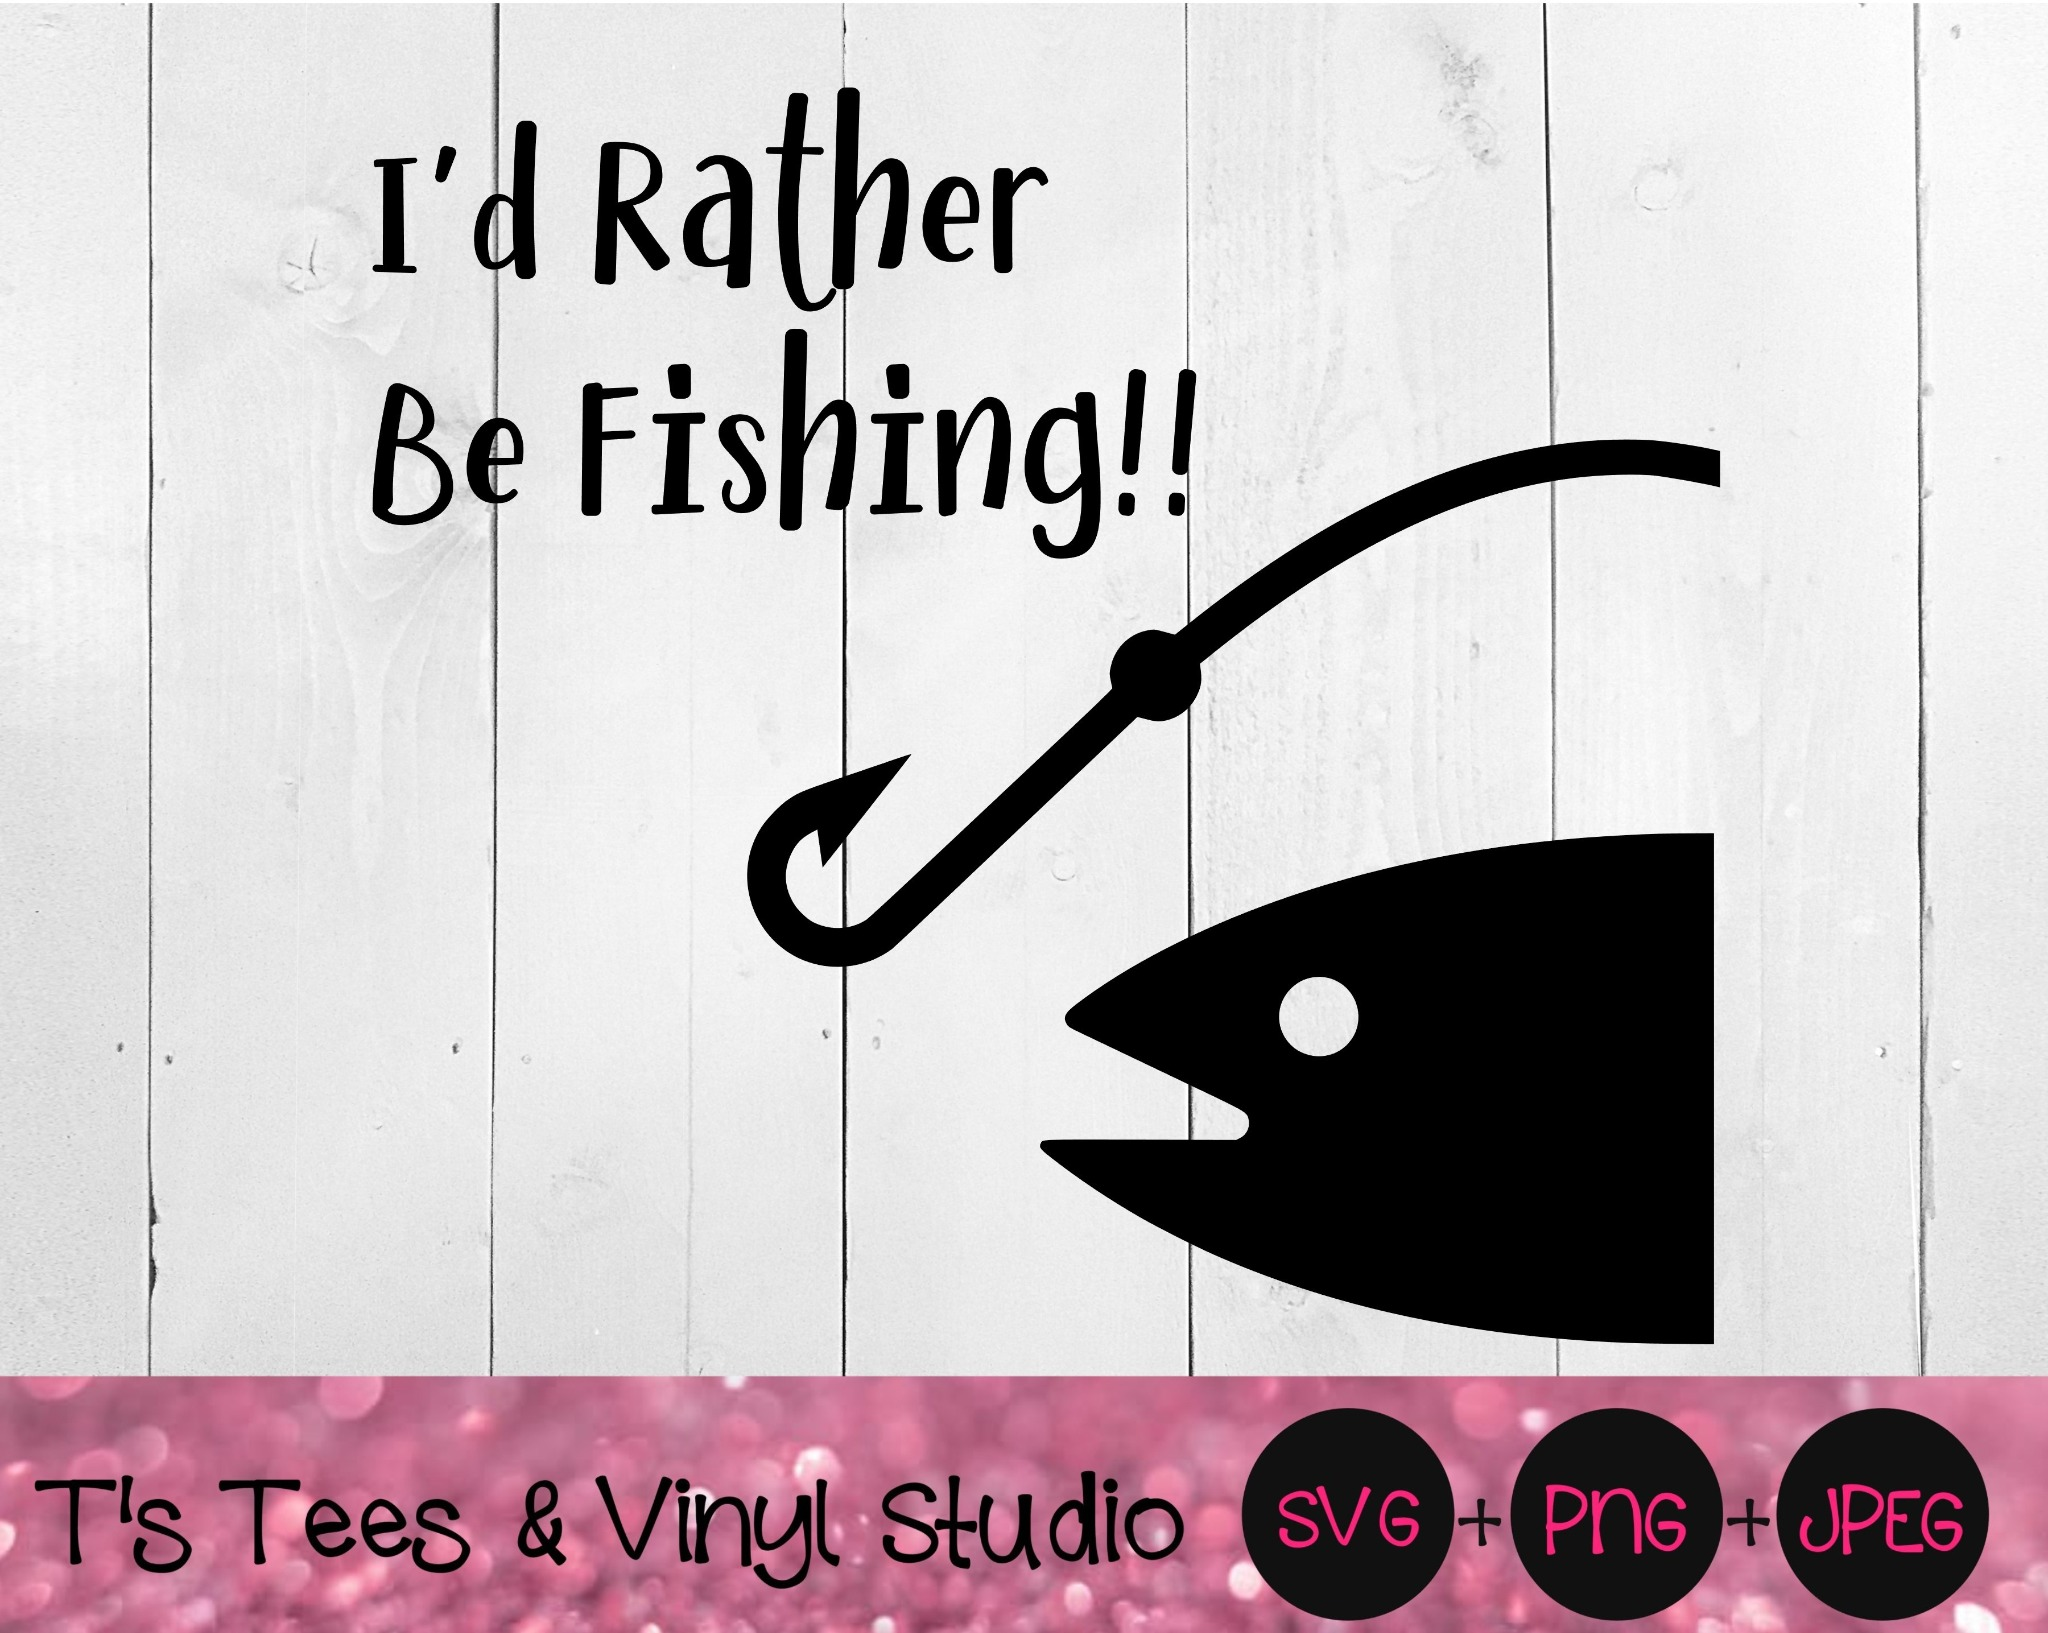 Fishing SVG, Fish PNG, Bait Jpeg, I'd Rather Be Fishing, Love To Fish, Digital Download, Cut File, S